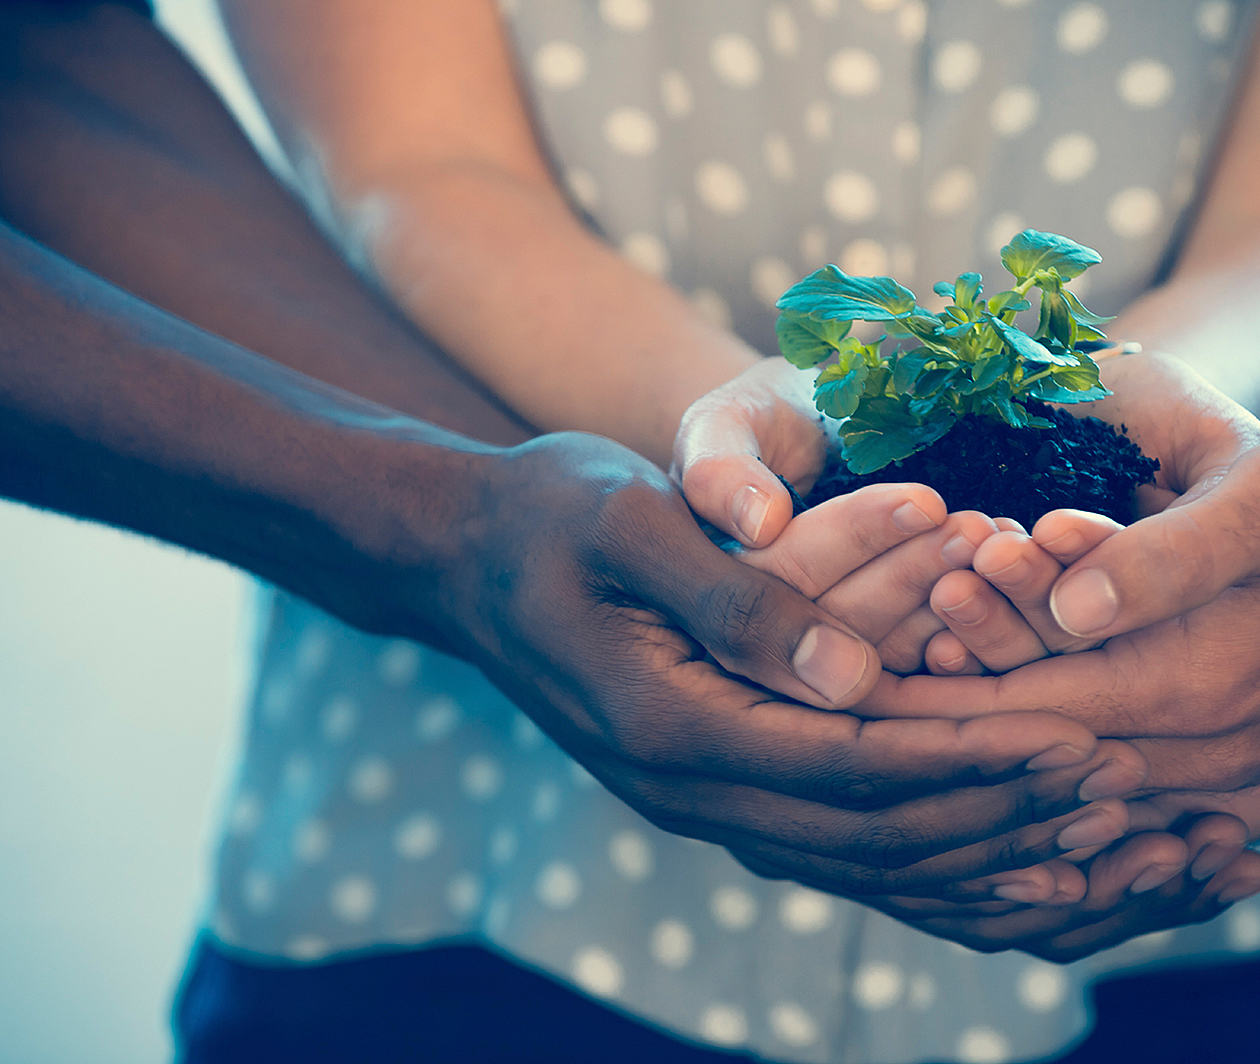 Social Enterprise: Growing a Sustainable Business